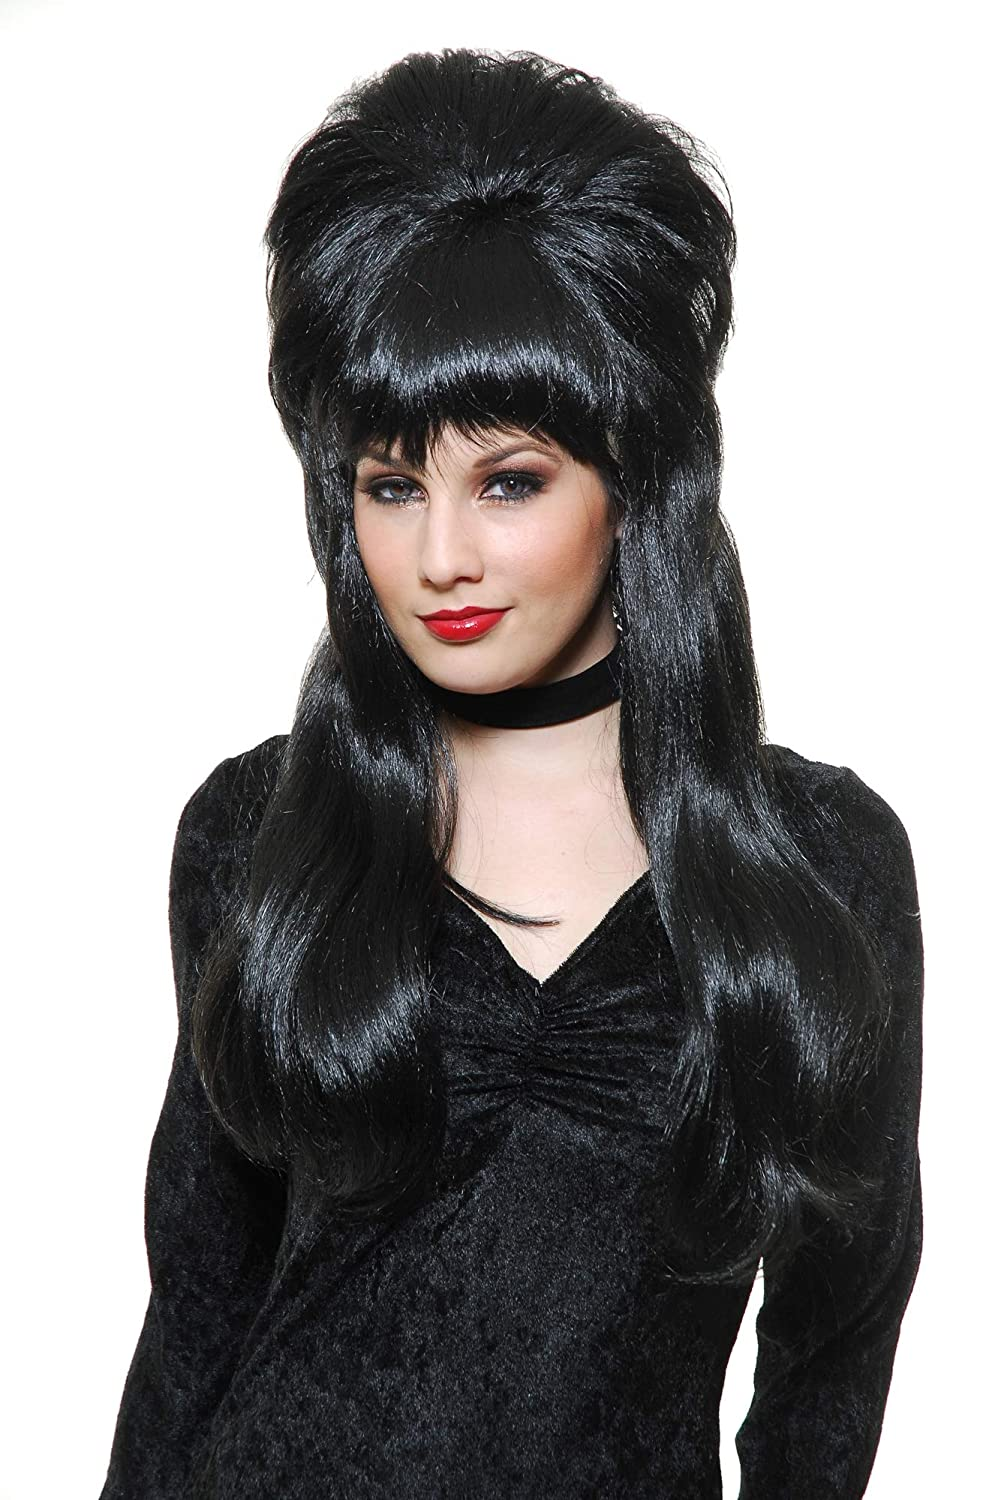 Charades Women's Mistress of The Dark Wig, Black, One Size CH60466_OS